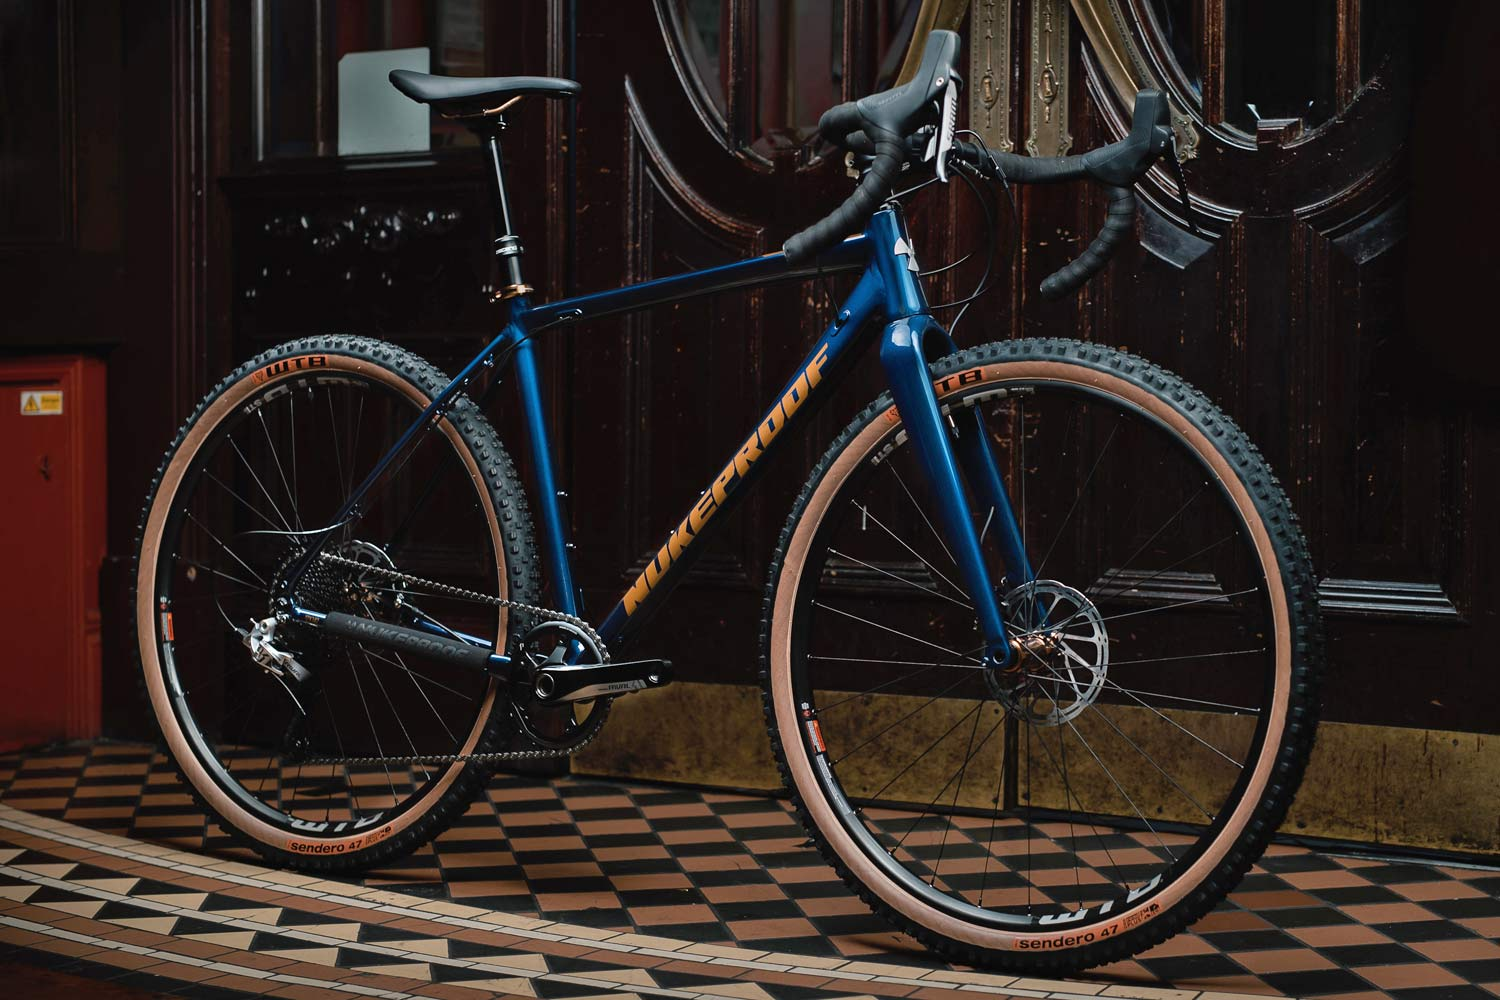 064e94f27d3 Both roll on WTB's new 47mm wide 650B Sendero Road Plus tires and tubeless-ready  wheels. The blue 2019 Nukeproof Digger Pro closely resembles the companies  ...